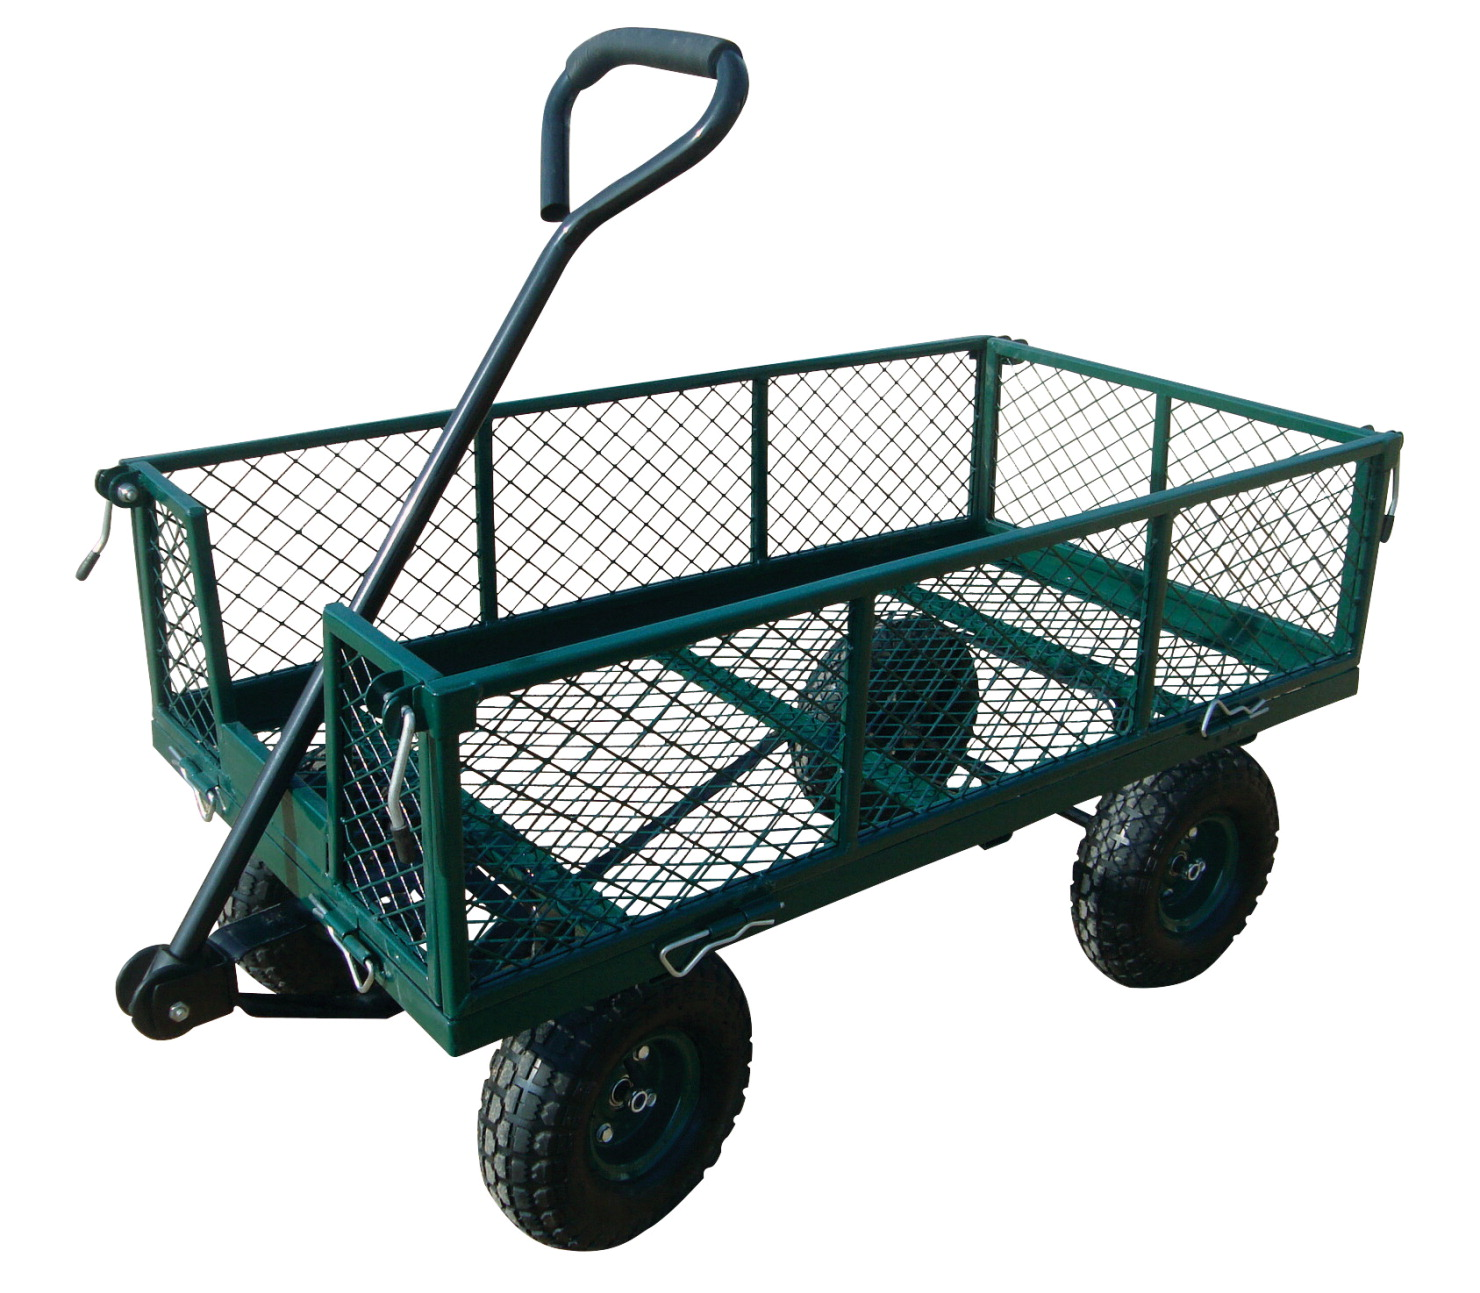 Sandusky Lee Heavy Duty Crate Hand Wagon, 18 W x 34 D x 21-3/4 H inches, 400 lb, Capacity, Green, Powder Coated